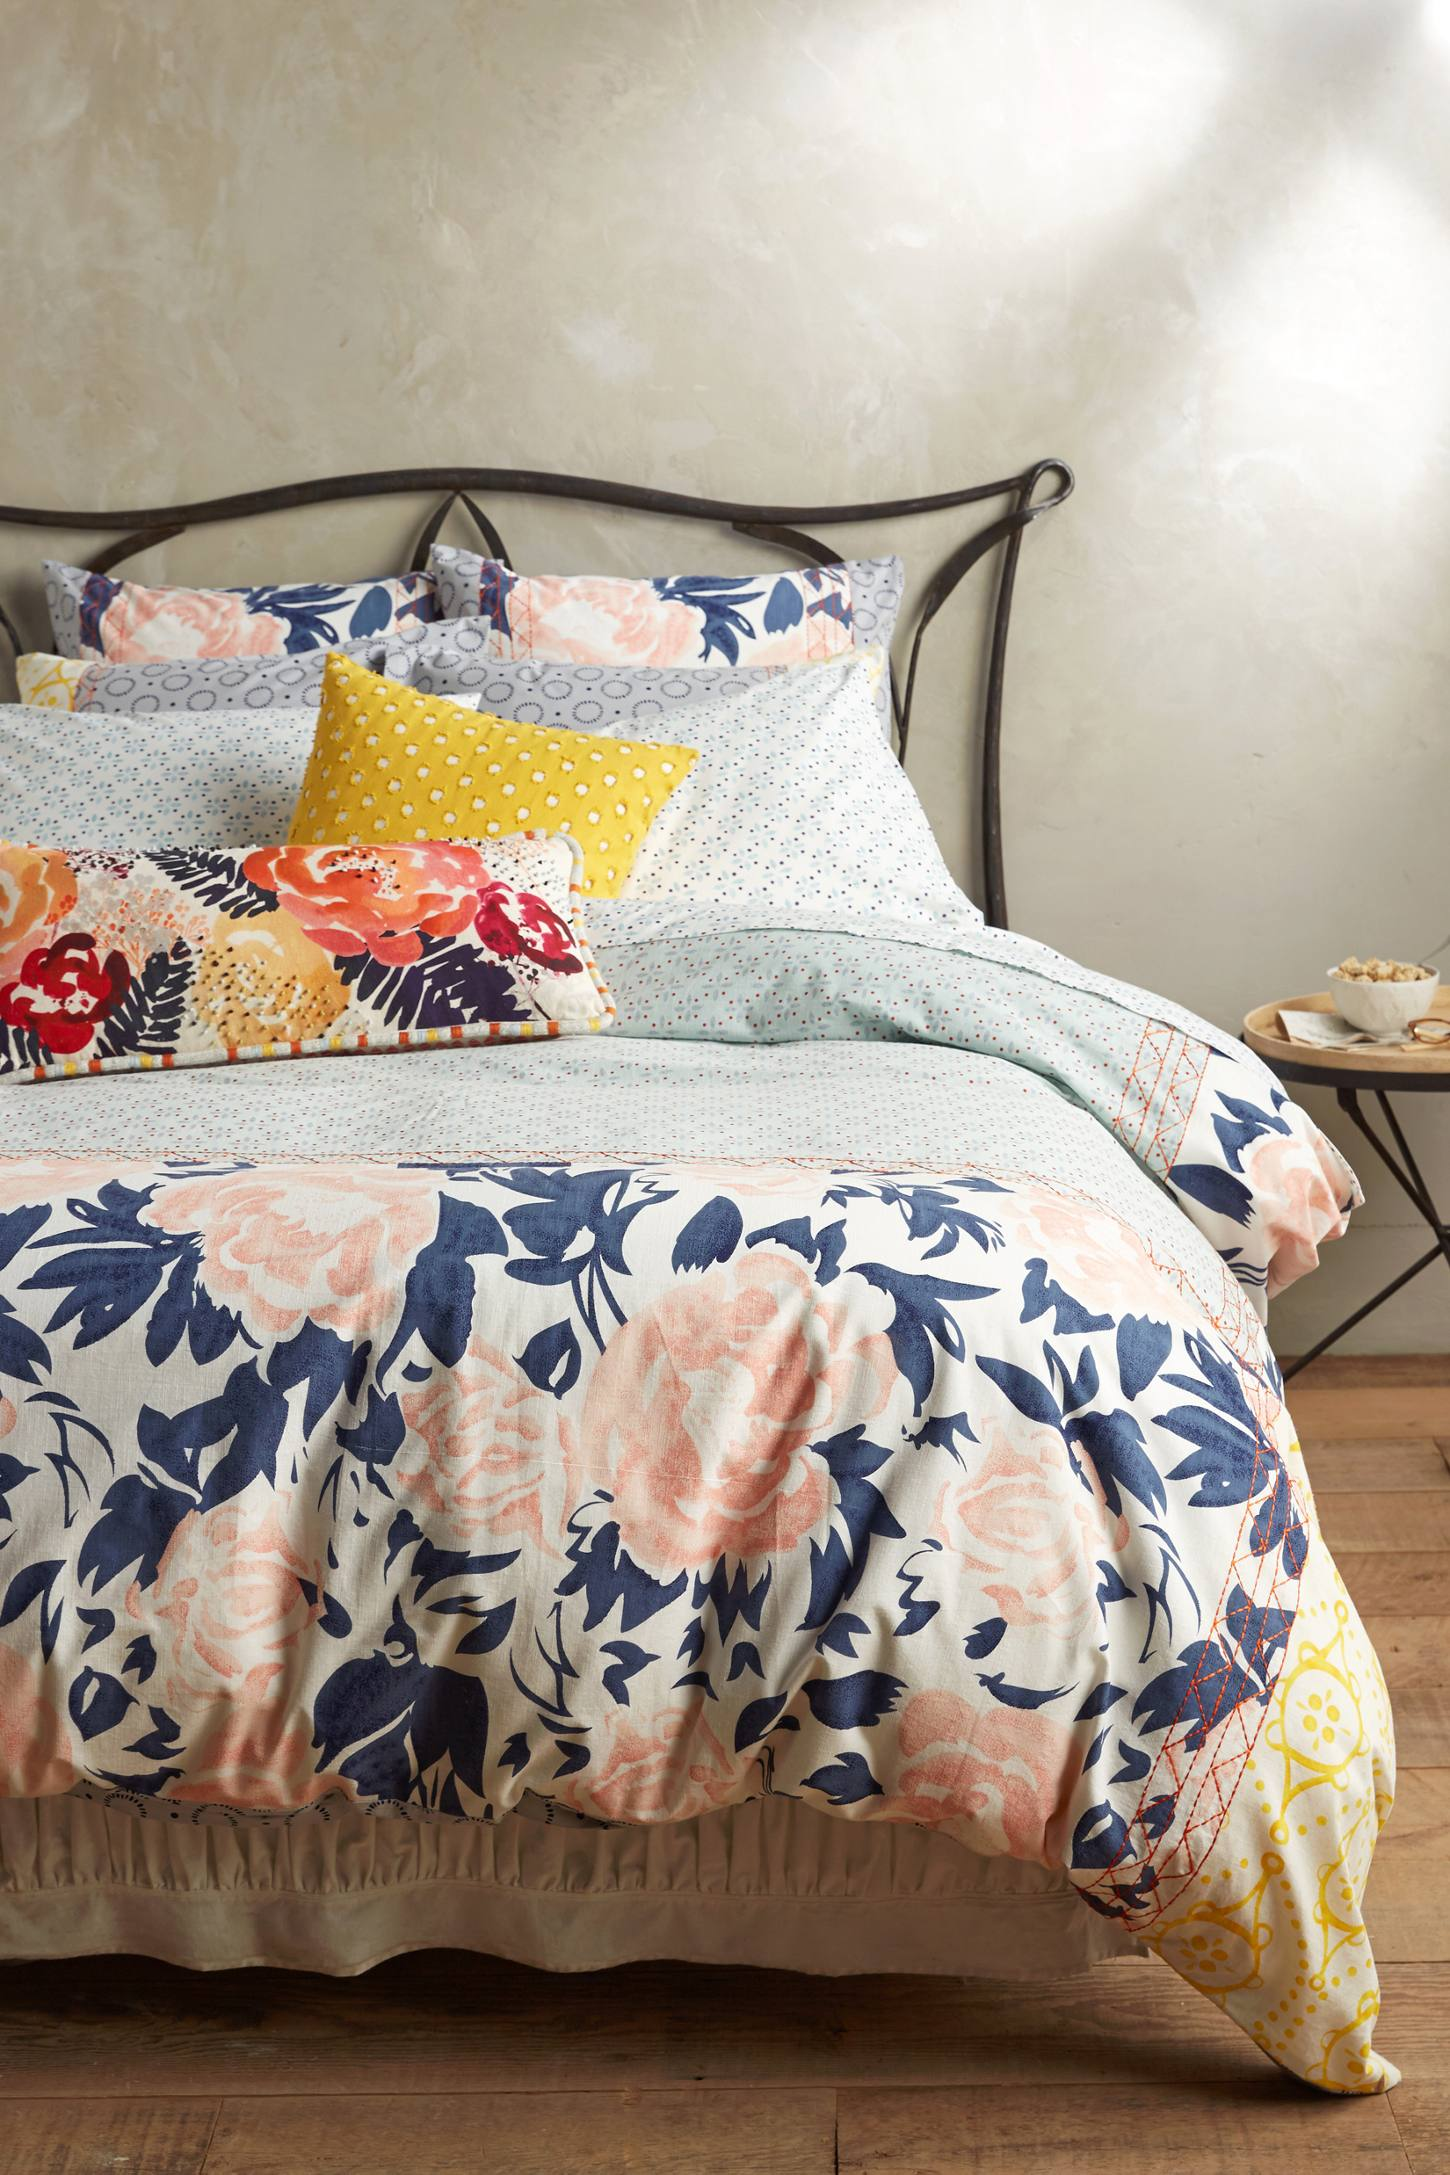 anthropologie-home-bedding-duvets